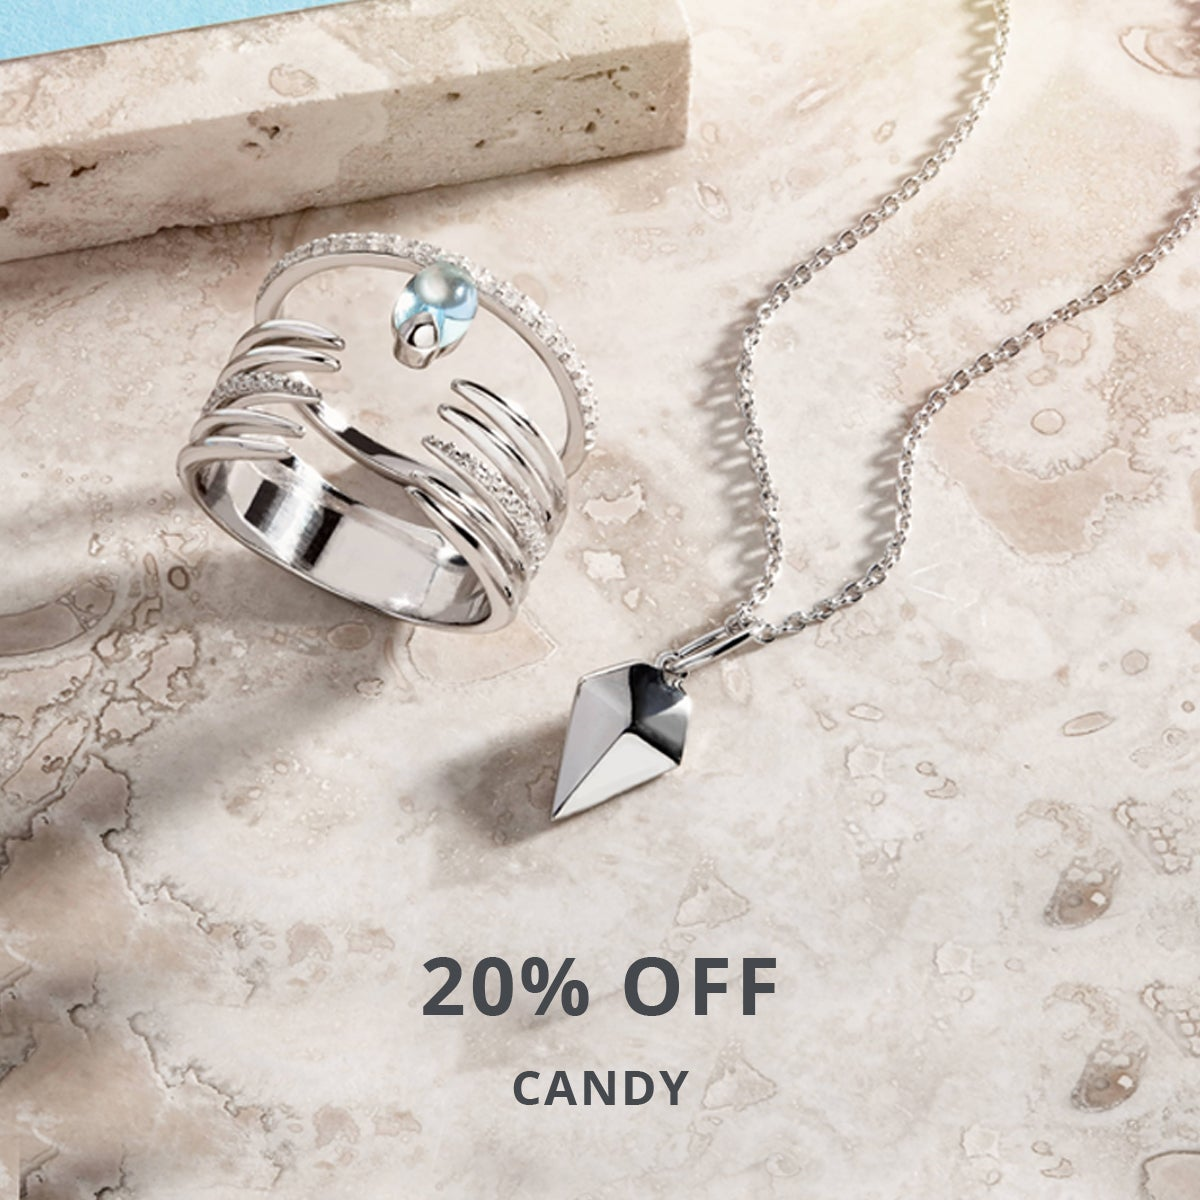 20% Off CANDY